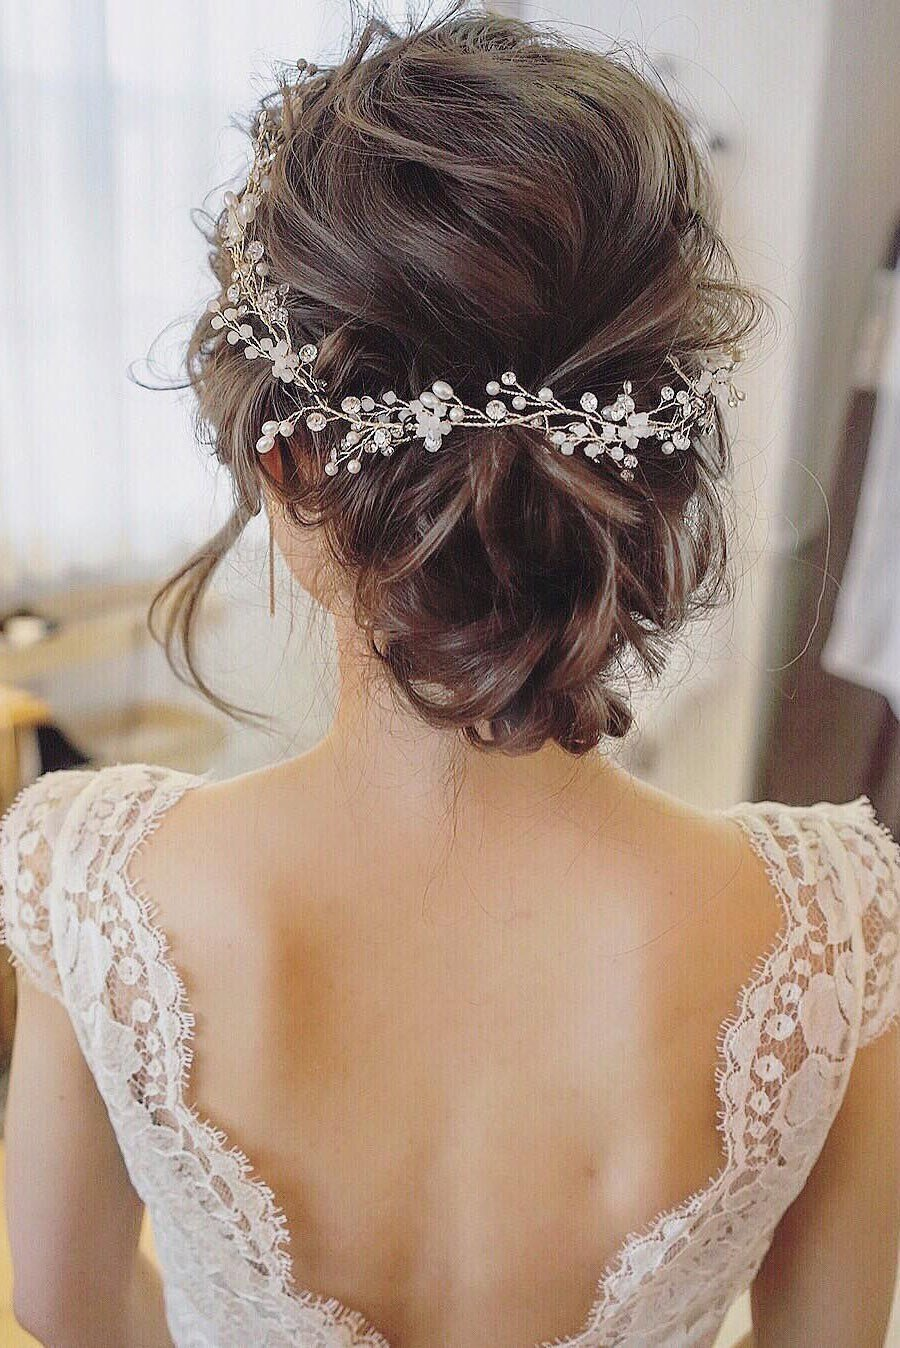 The Best 25 Chic Updo Wedding Hairstyles For All Brides Pictures